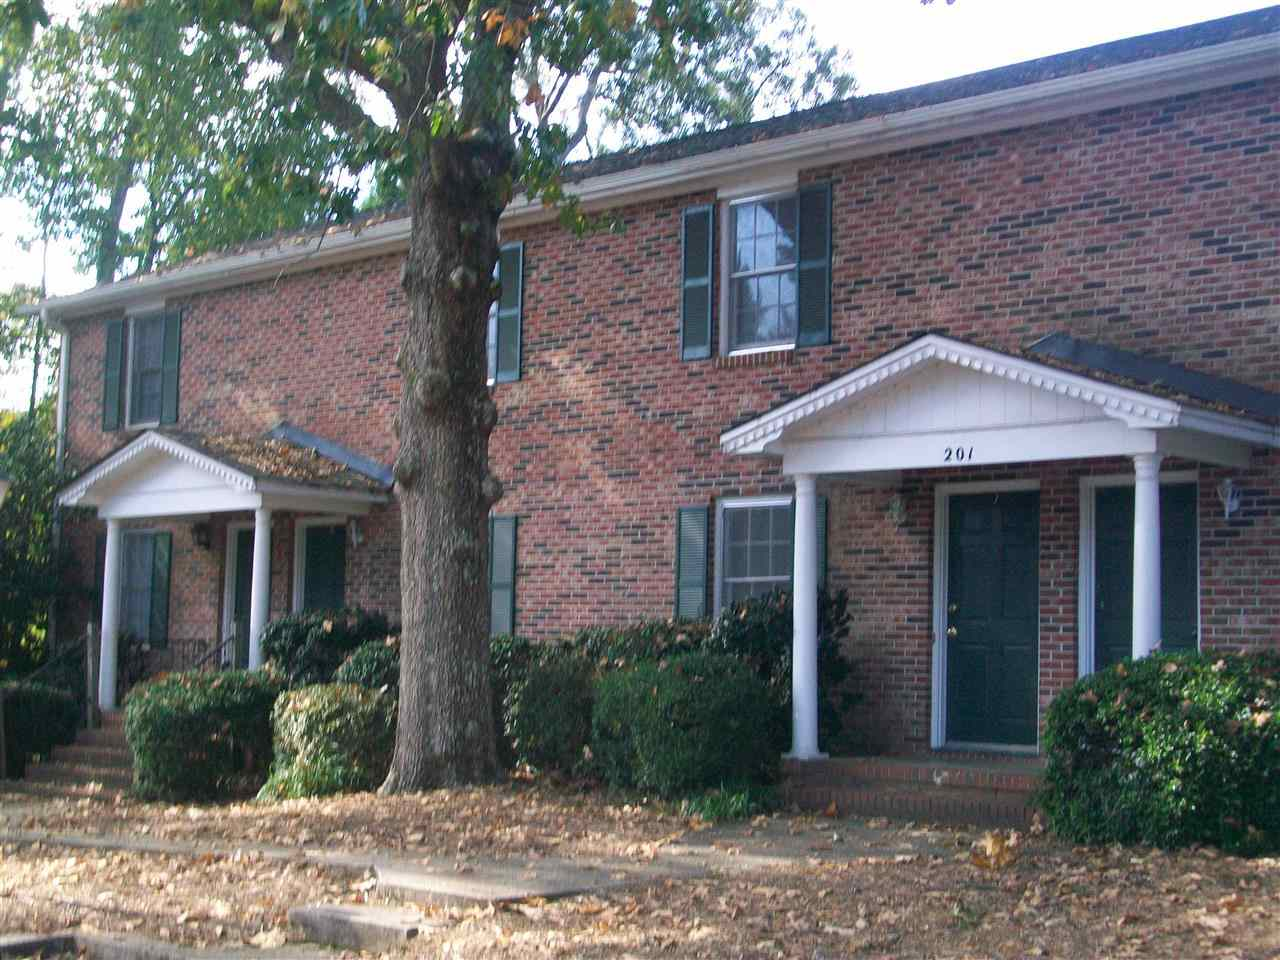 Rental Homes for Rent, ListingId:30502946, location: 201 Pickens St. Clemson 29631